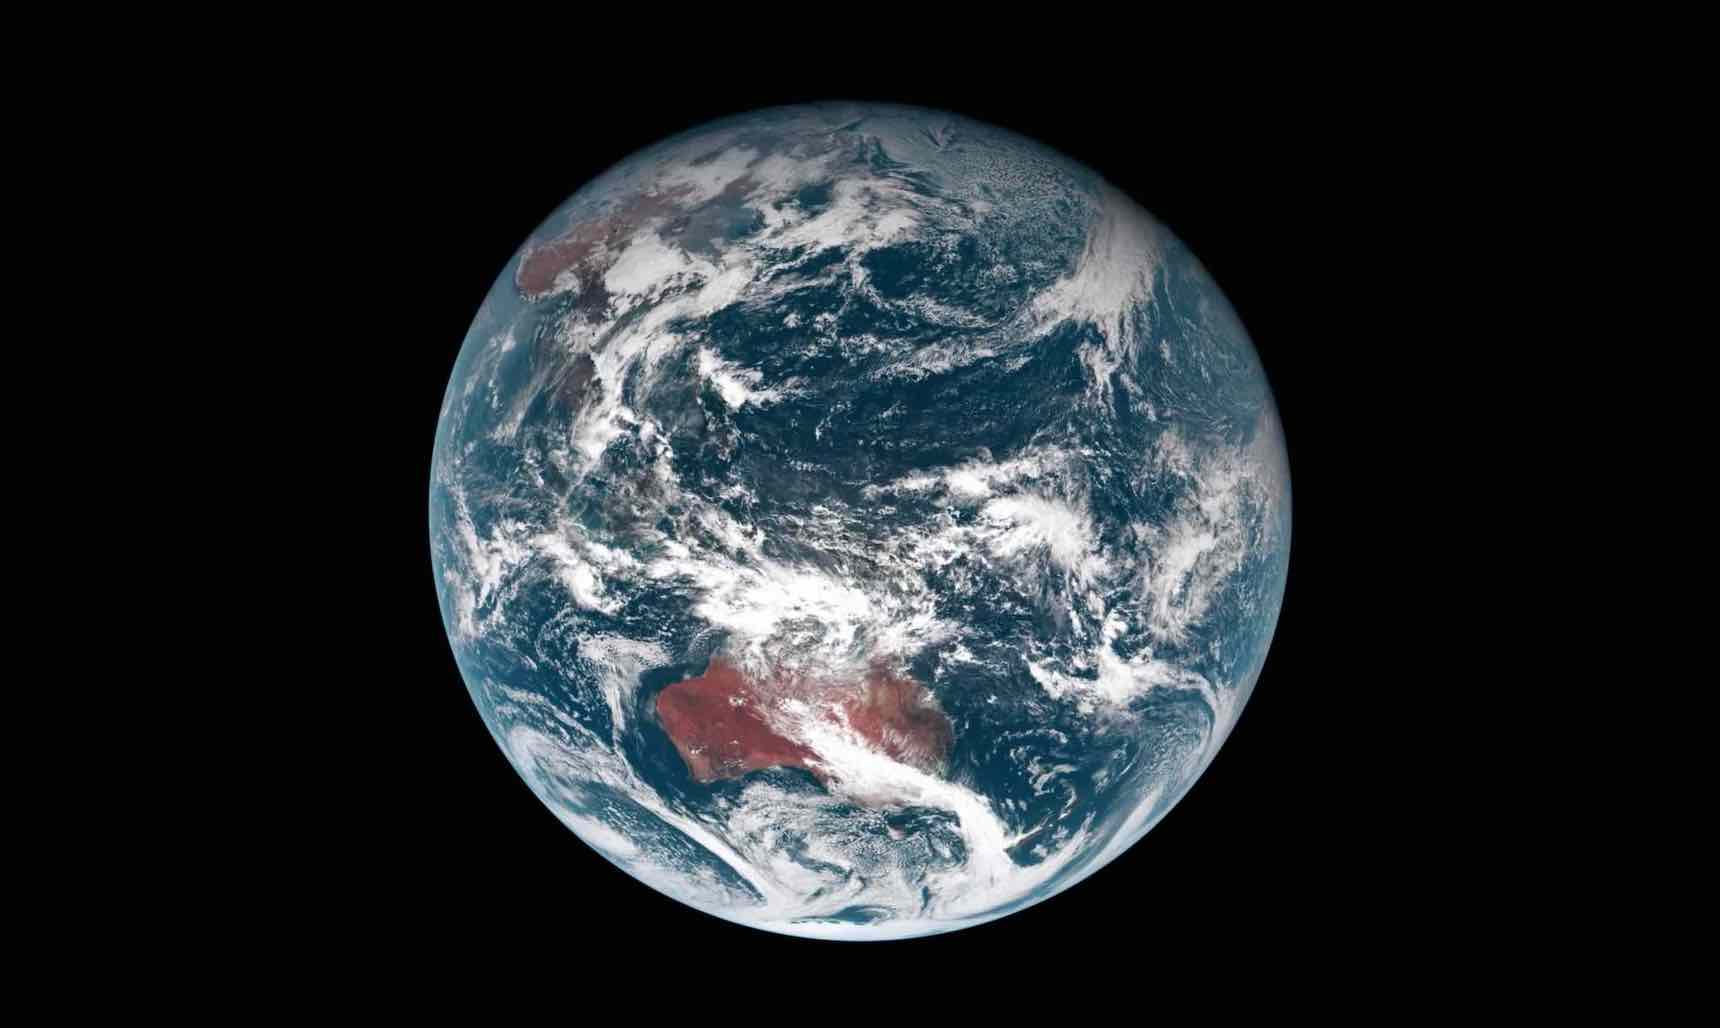 Planet Earth vies form the satellite